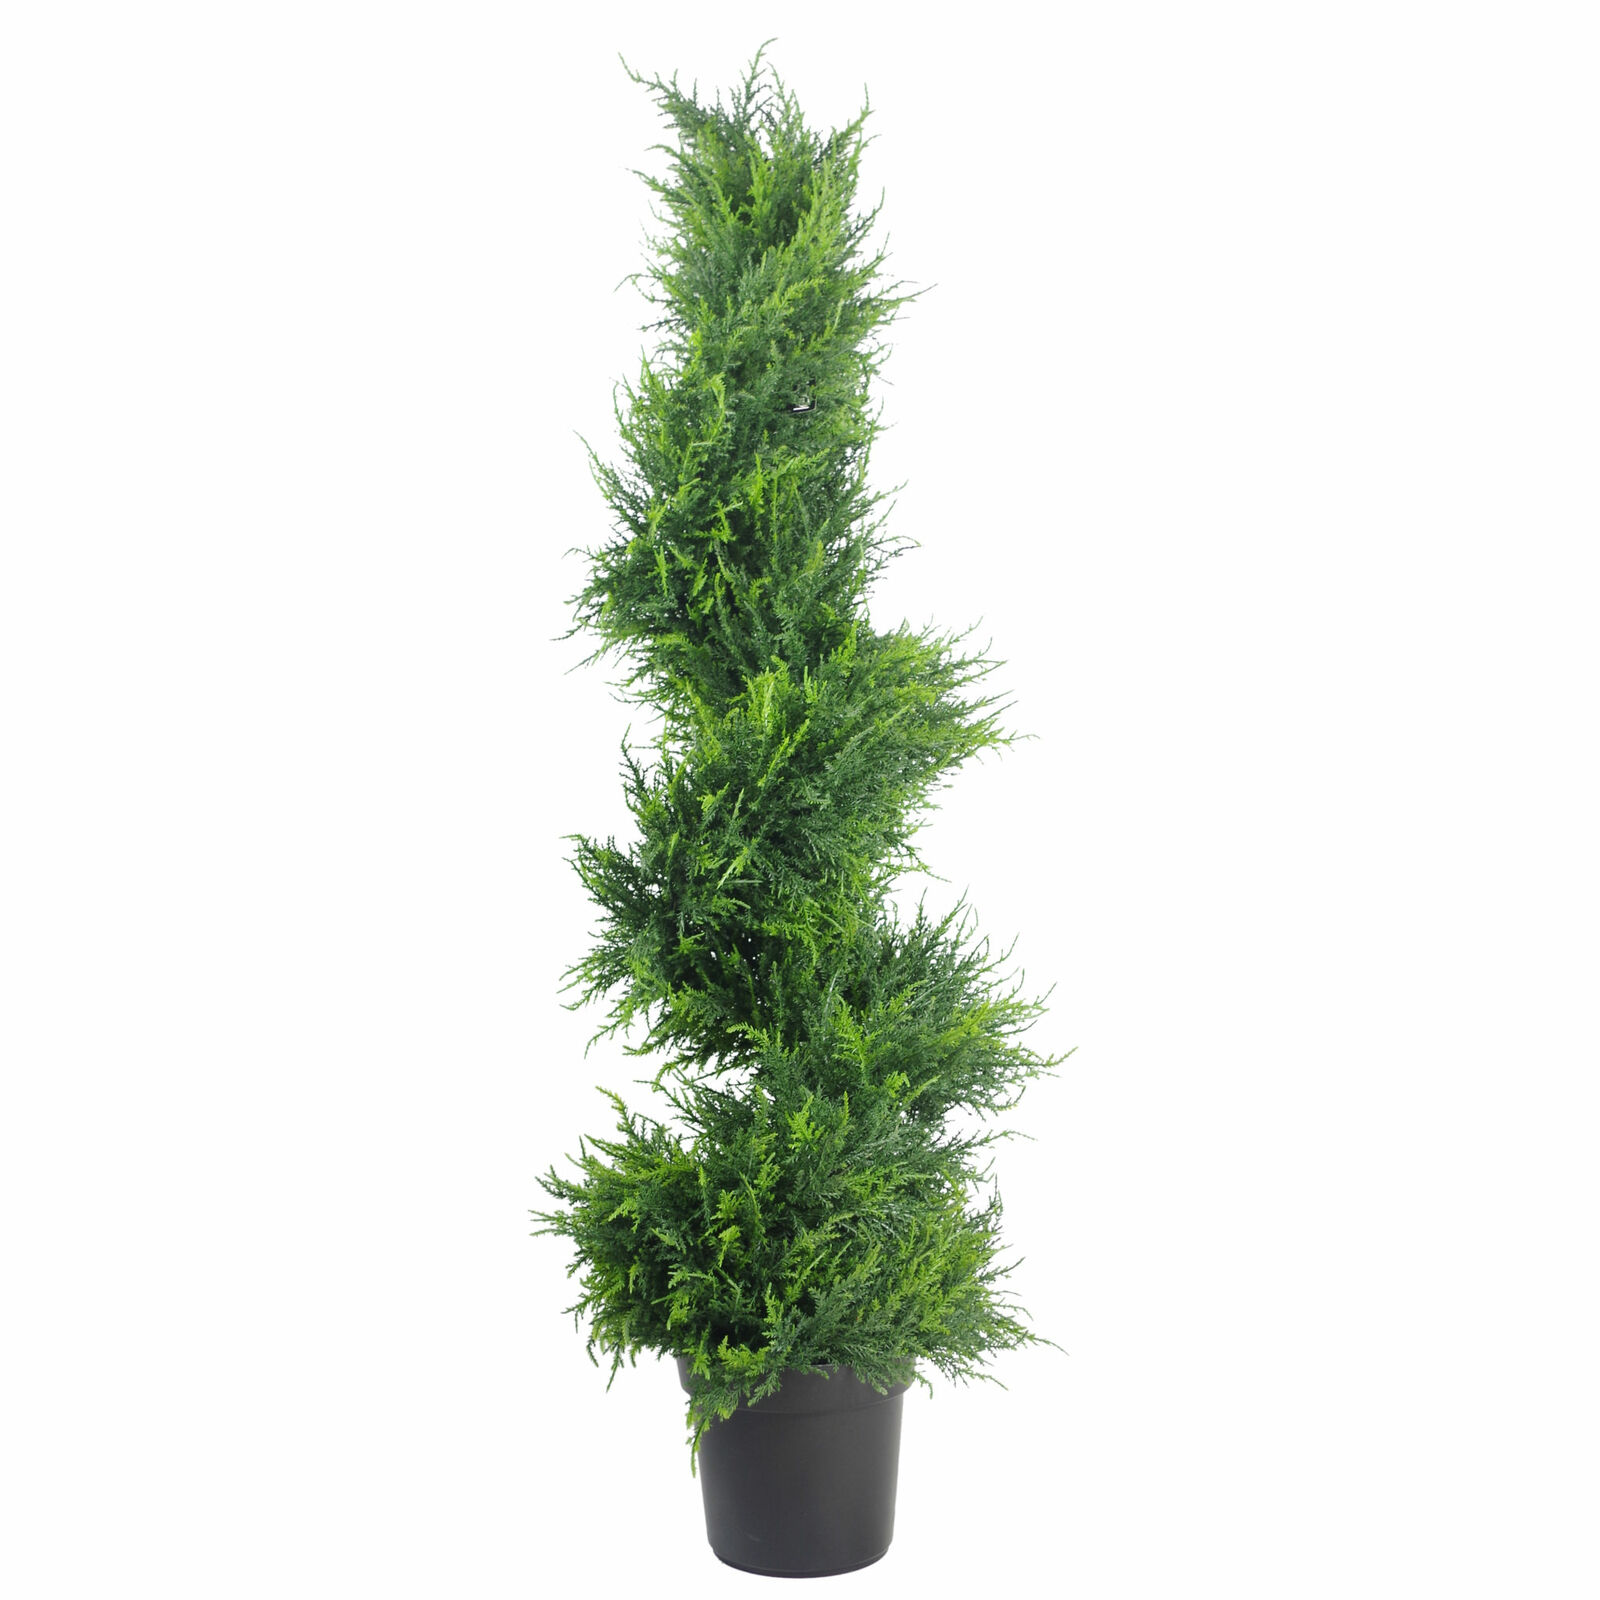 120cm Premium Artificial Spiral Cypress with pot LEAF-7282